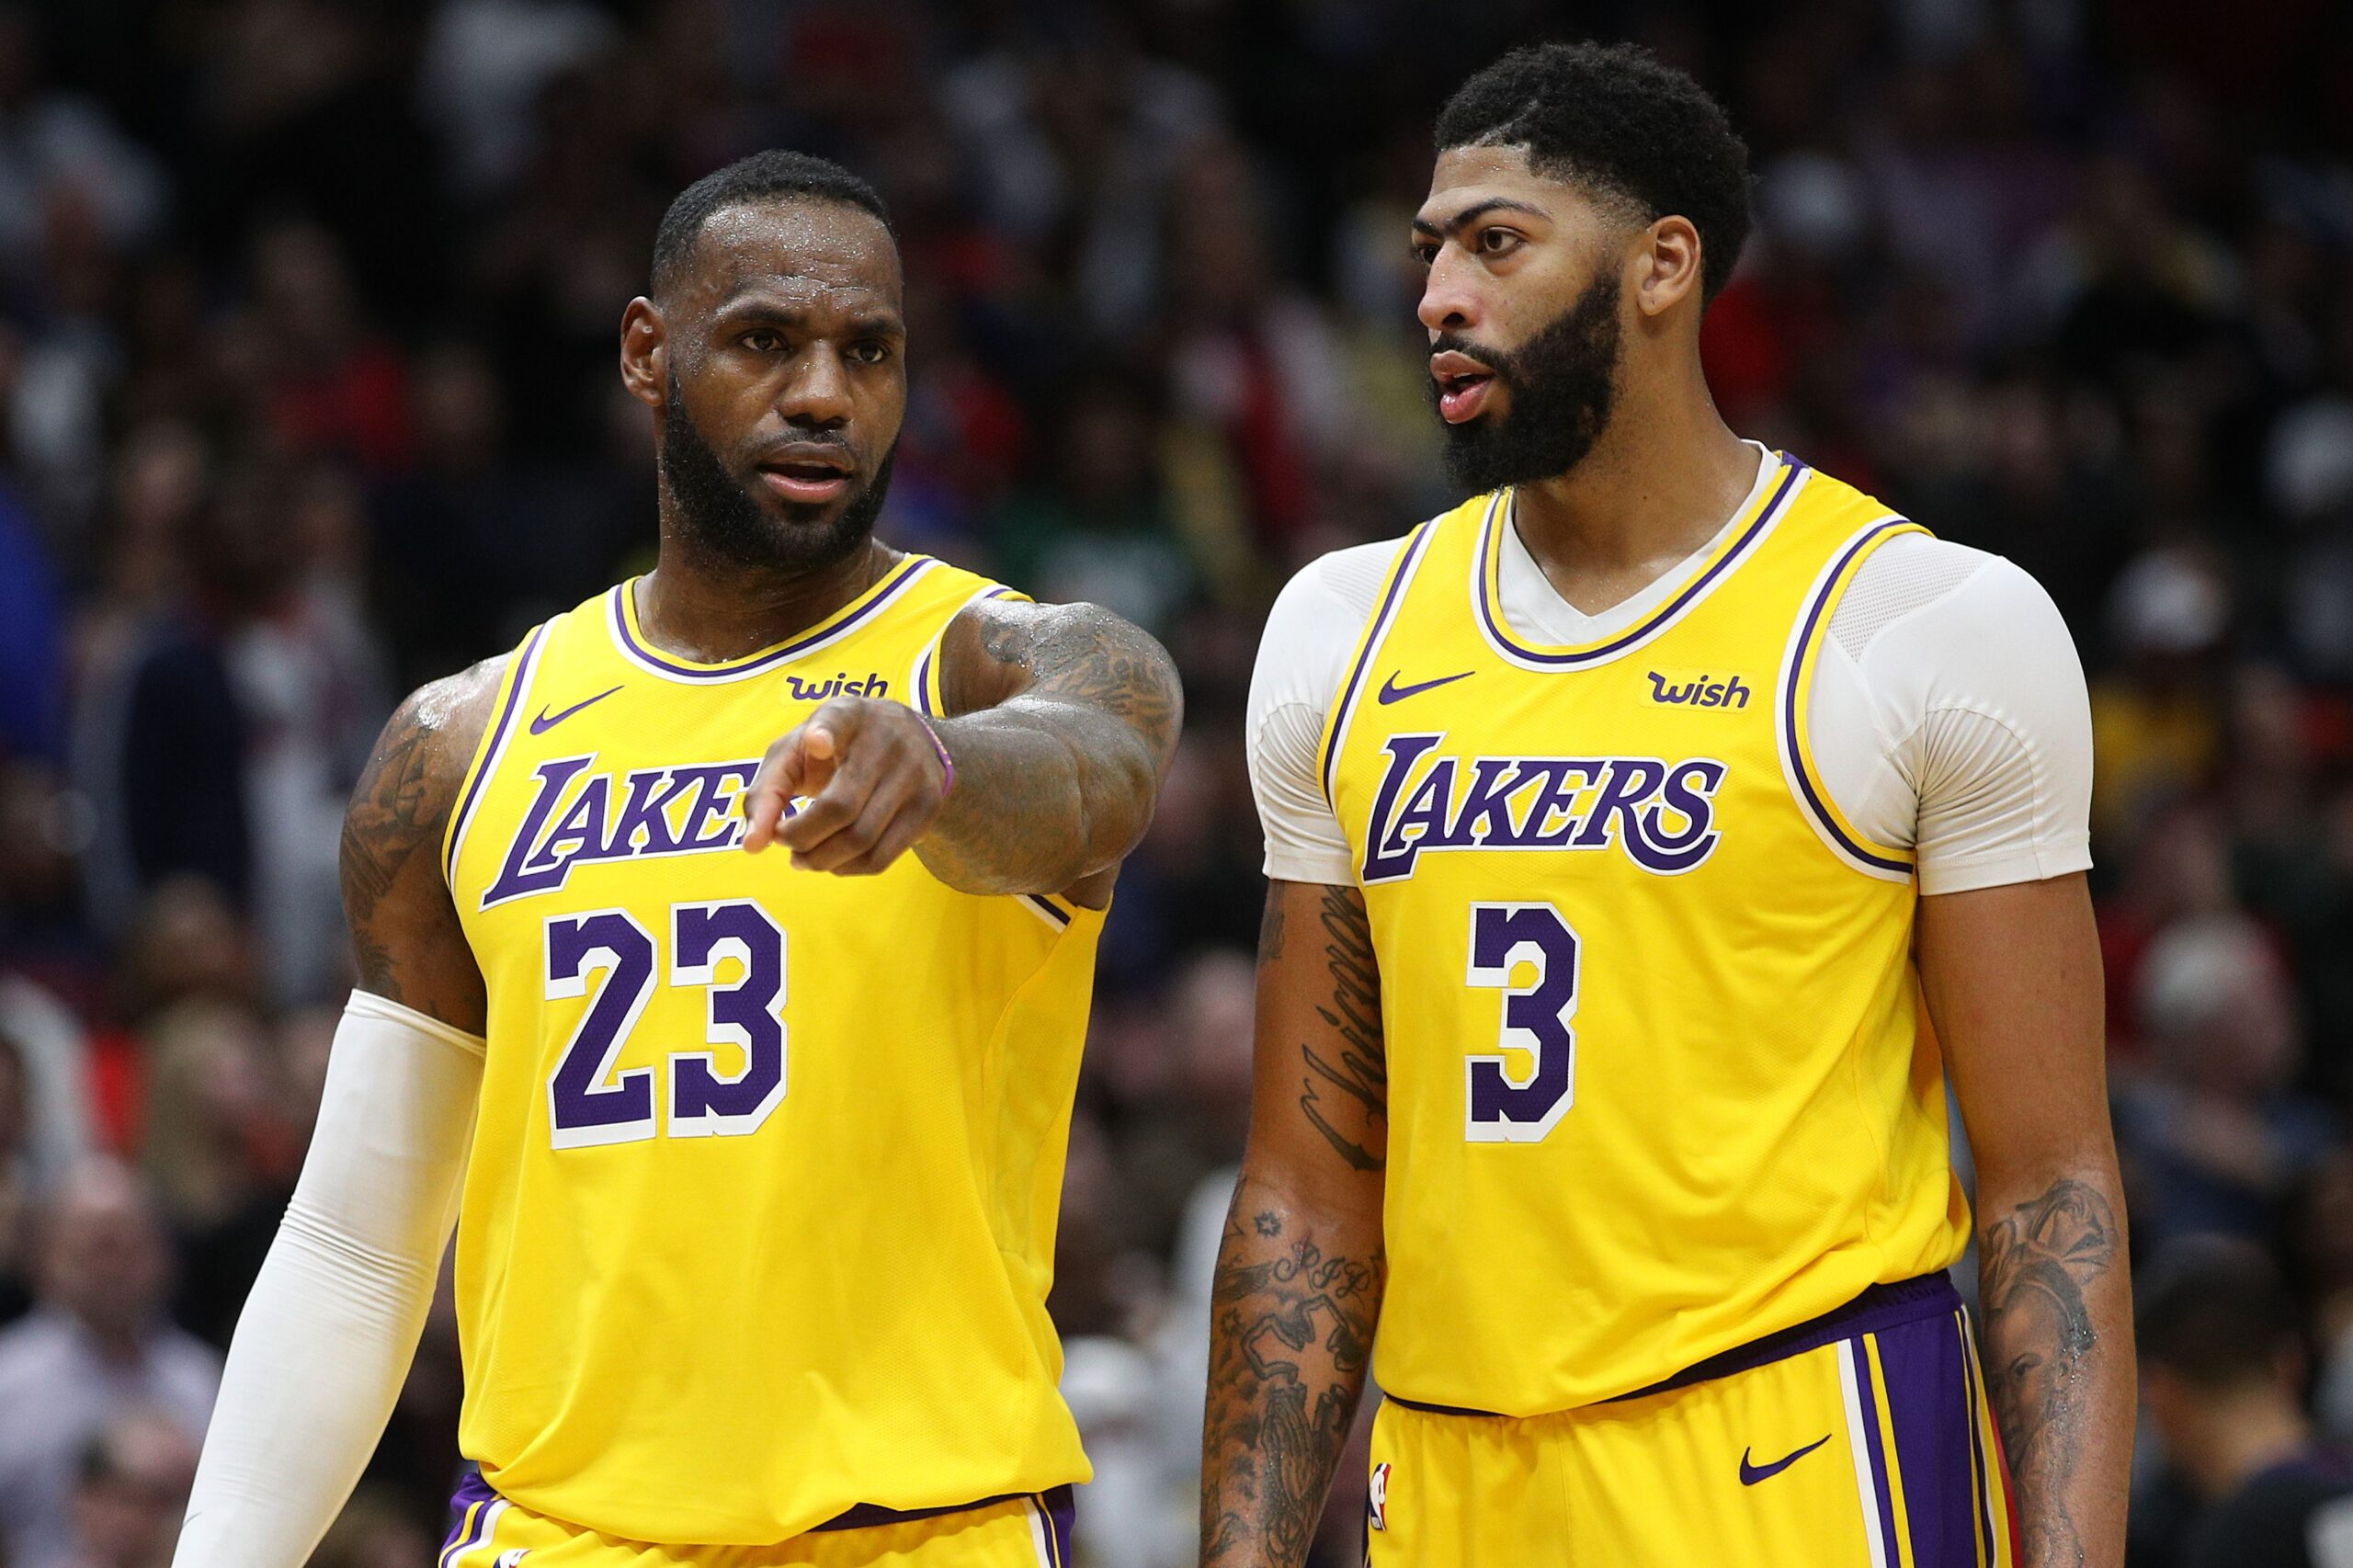 Lakers vs. Trail Blazers score, takeaways: LeBron, Anthony Davis have huge nights in closeout Game 5 win